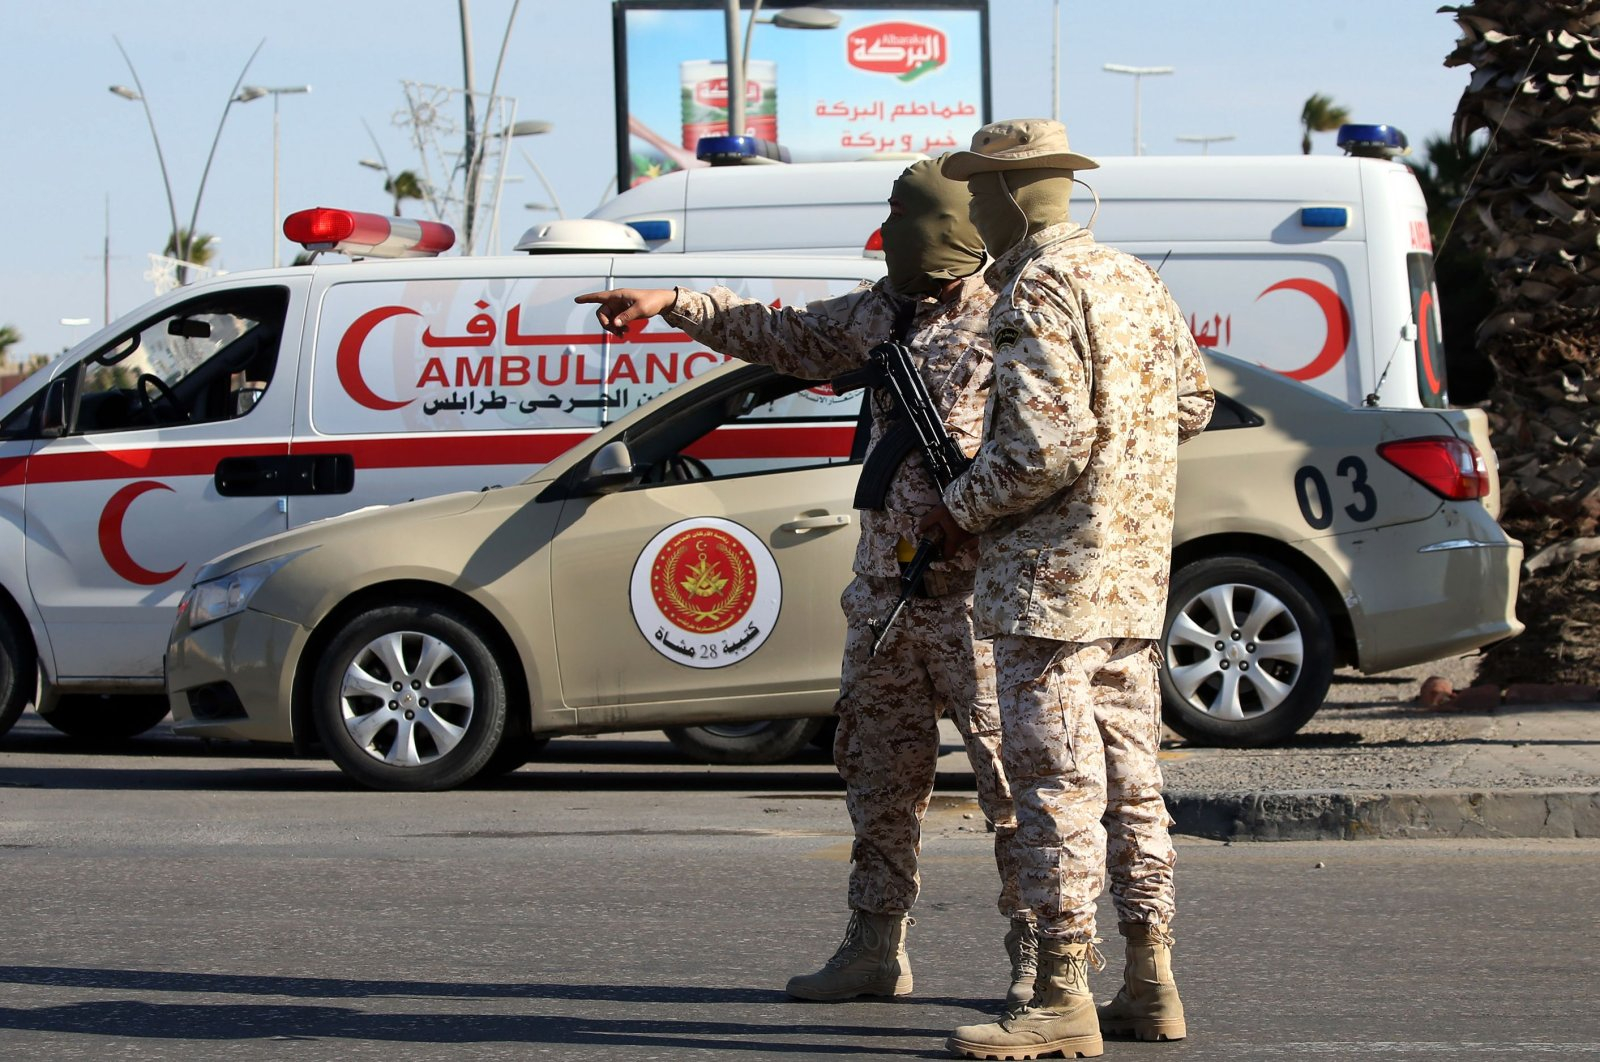 Members of the Libyan security forces man a checkpoint in the capital Tripoli, to insure that the strict measures taken by the authorities to stem the spread of the coronavirus are respected, Friday, April 10, 2020. (AFP)